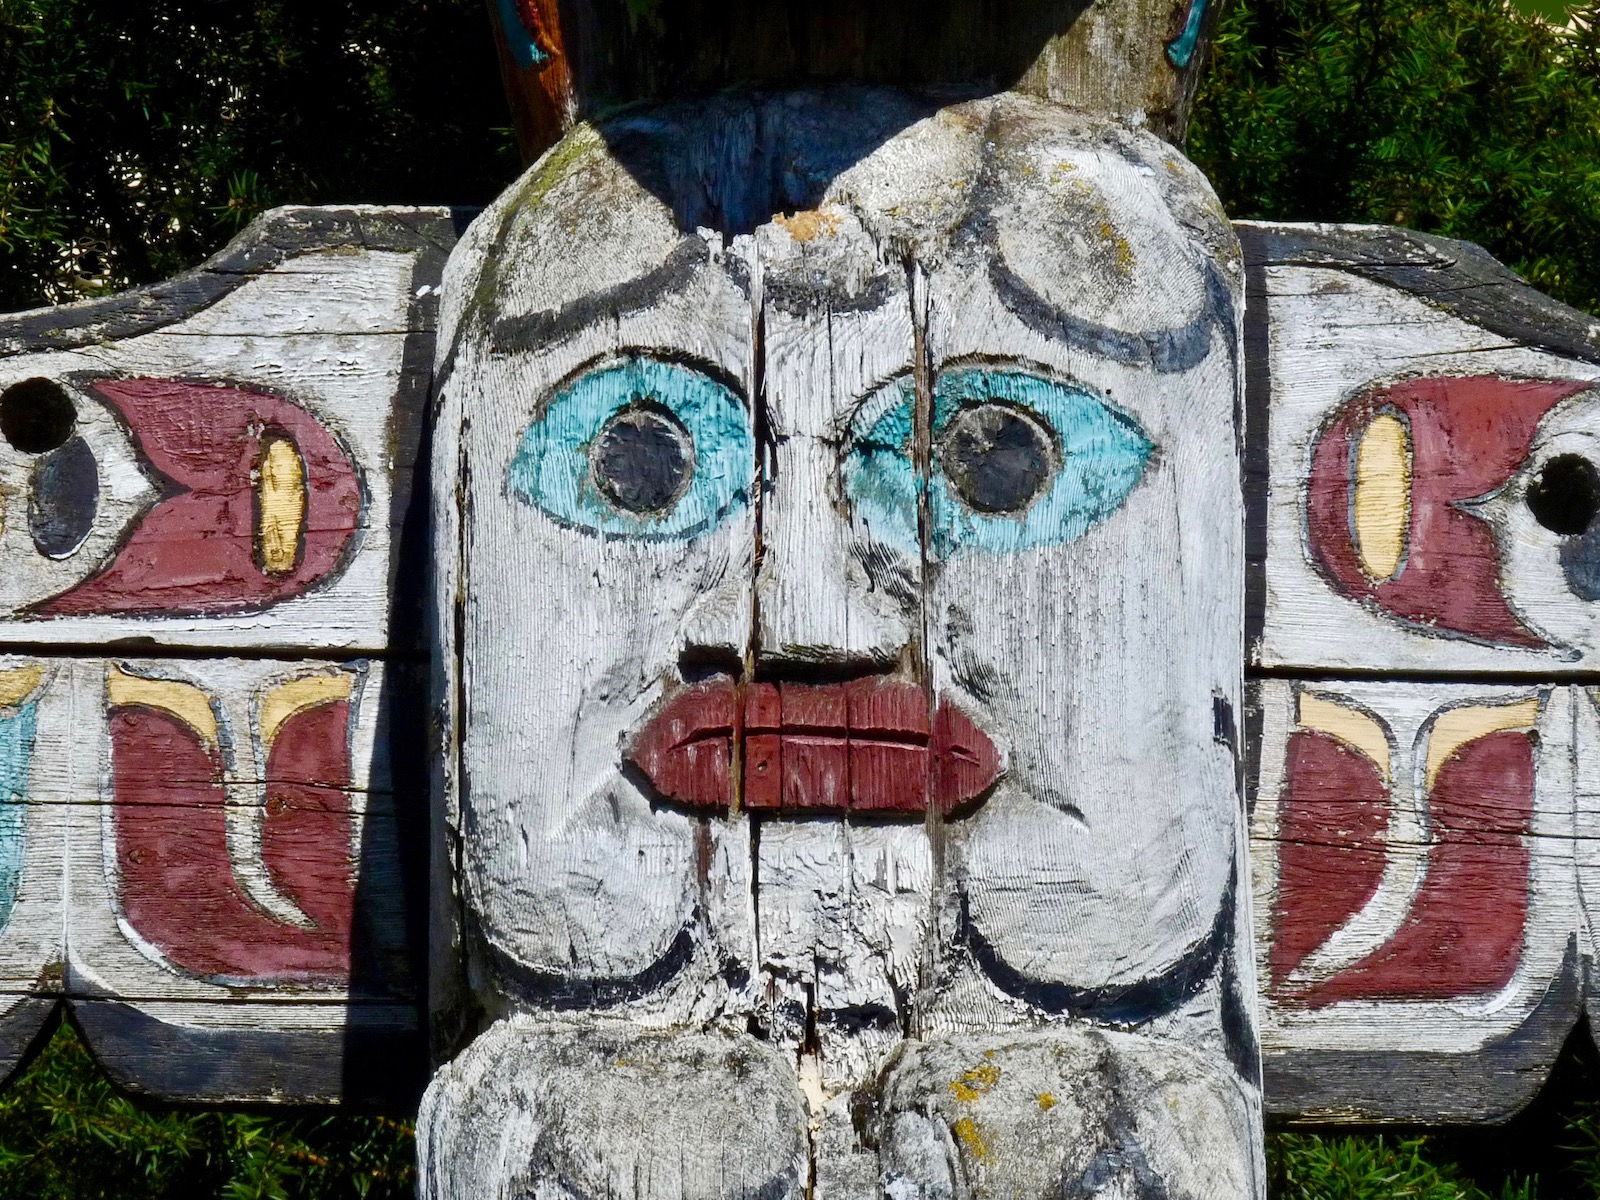 Semiahmoo First Nation asserts right to be consulted about casino